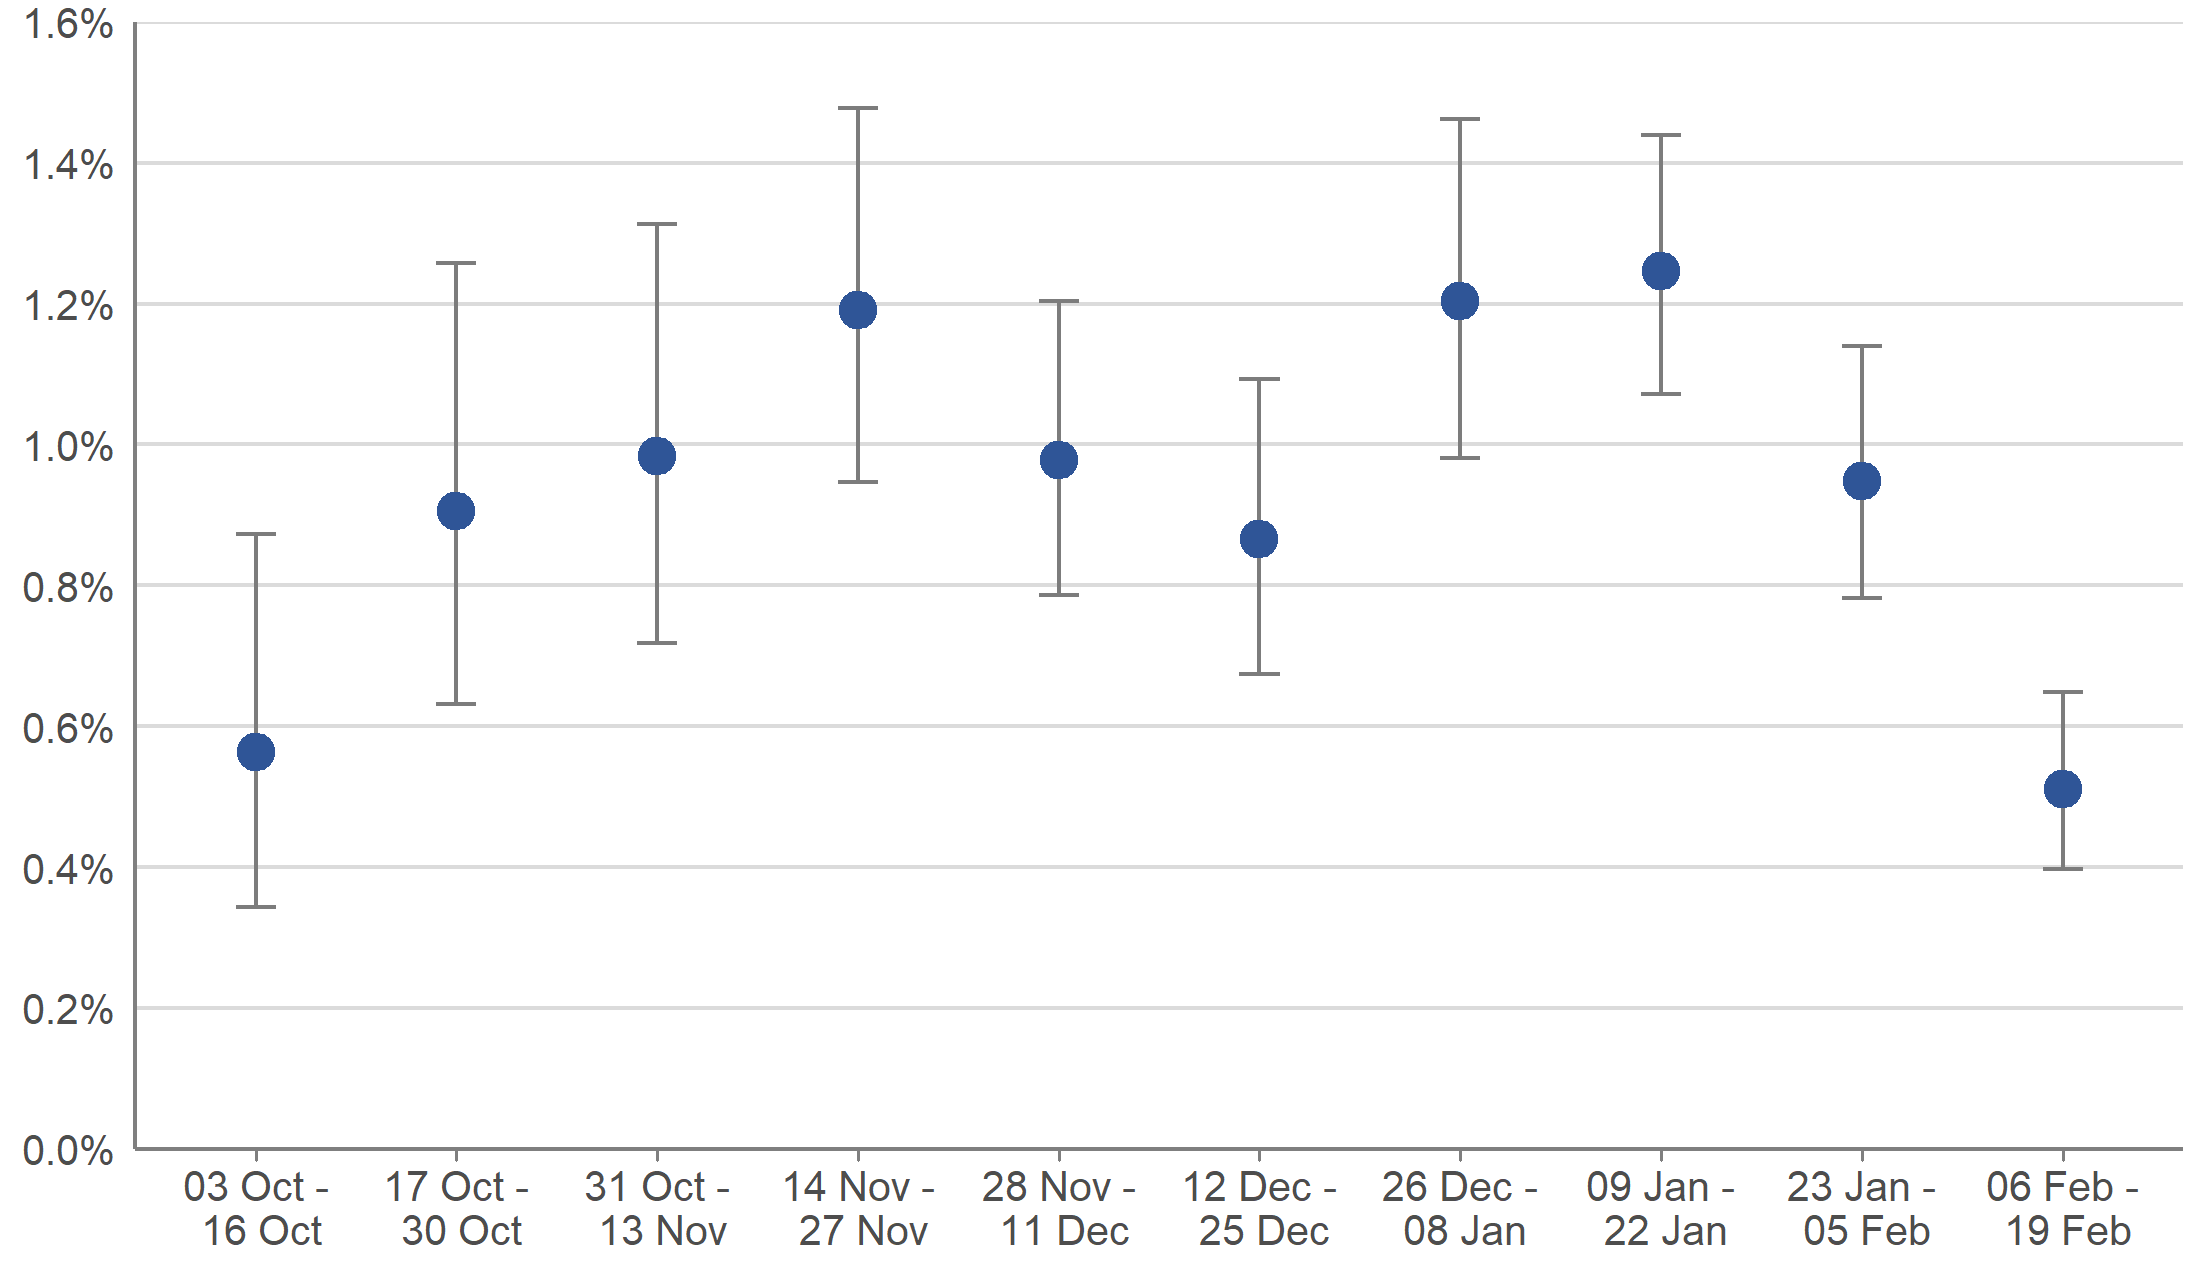 Weighted estimates of the percentage of the population that would have tested positive for COVID-19 between 3 October 2020 and 19 February 2021